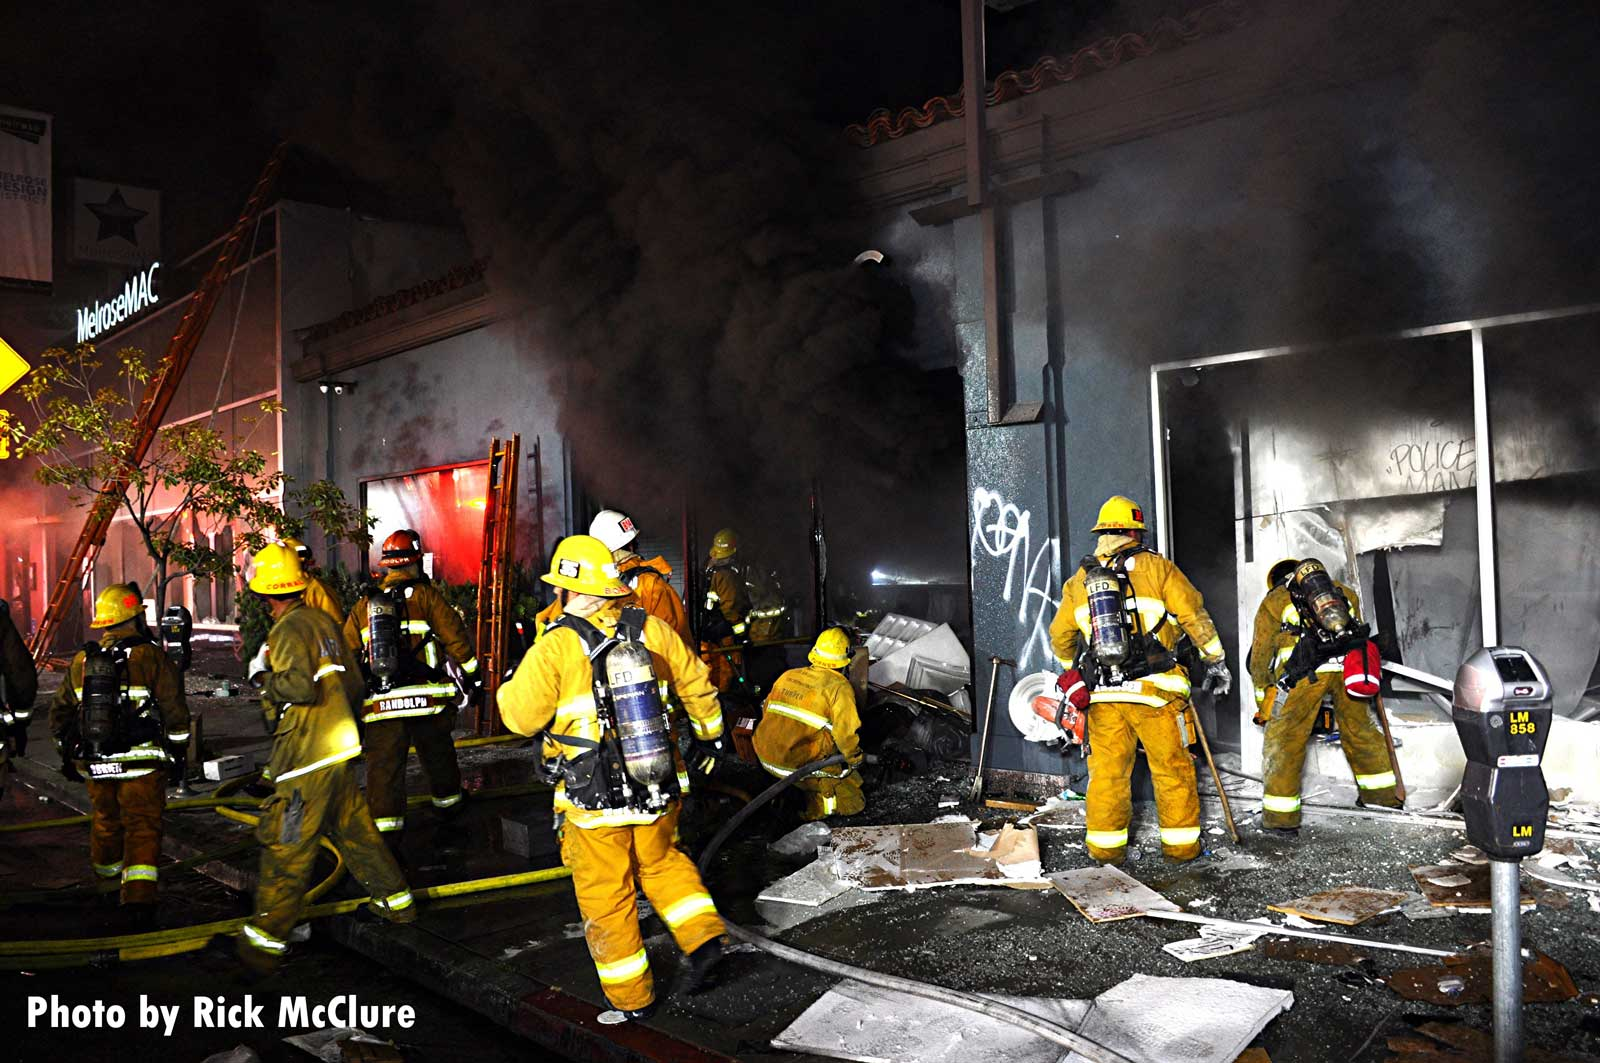 Los Angeles firefighters working at scene of fire